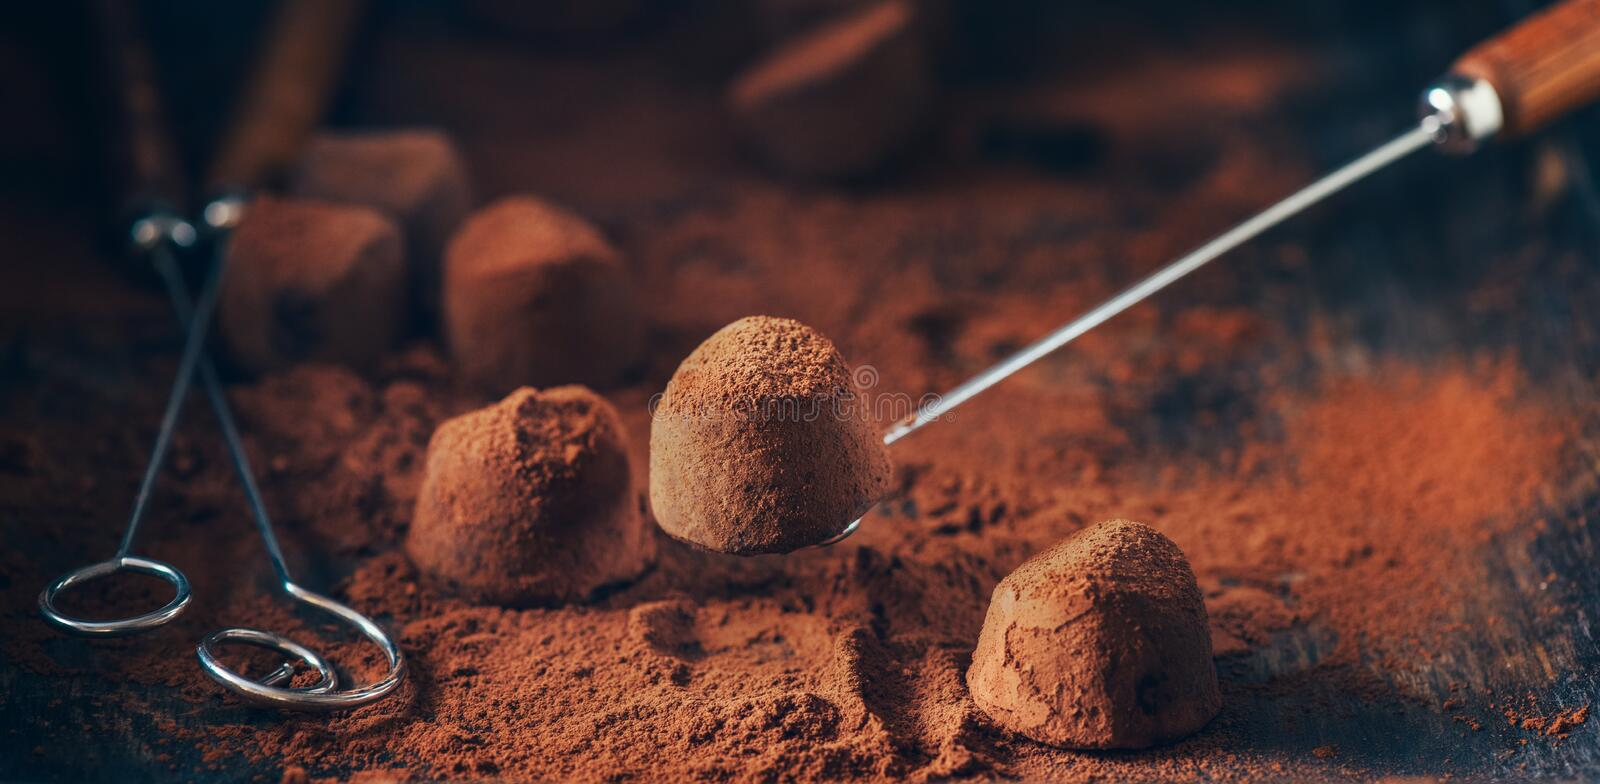 Chocolate truffles. Homemade fresh truffle dark chocolate candies with cocoa powder made by chocolatier royalty free stock images